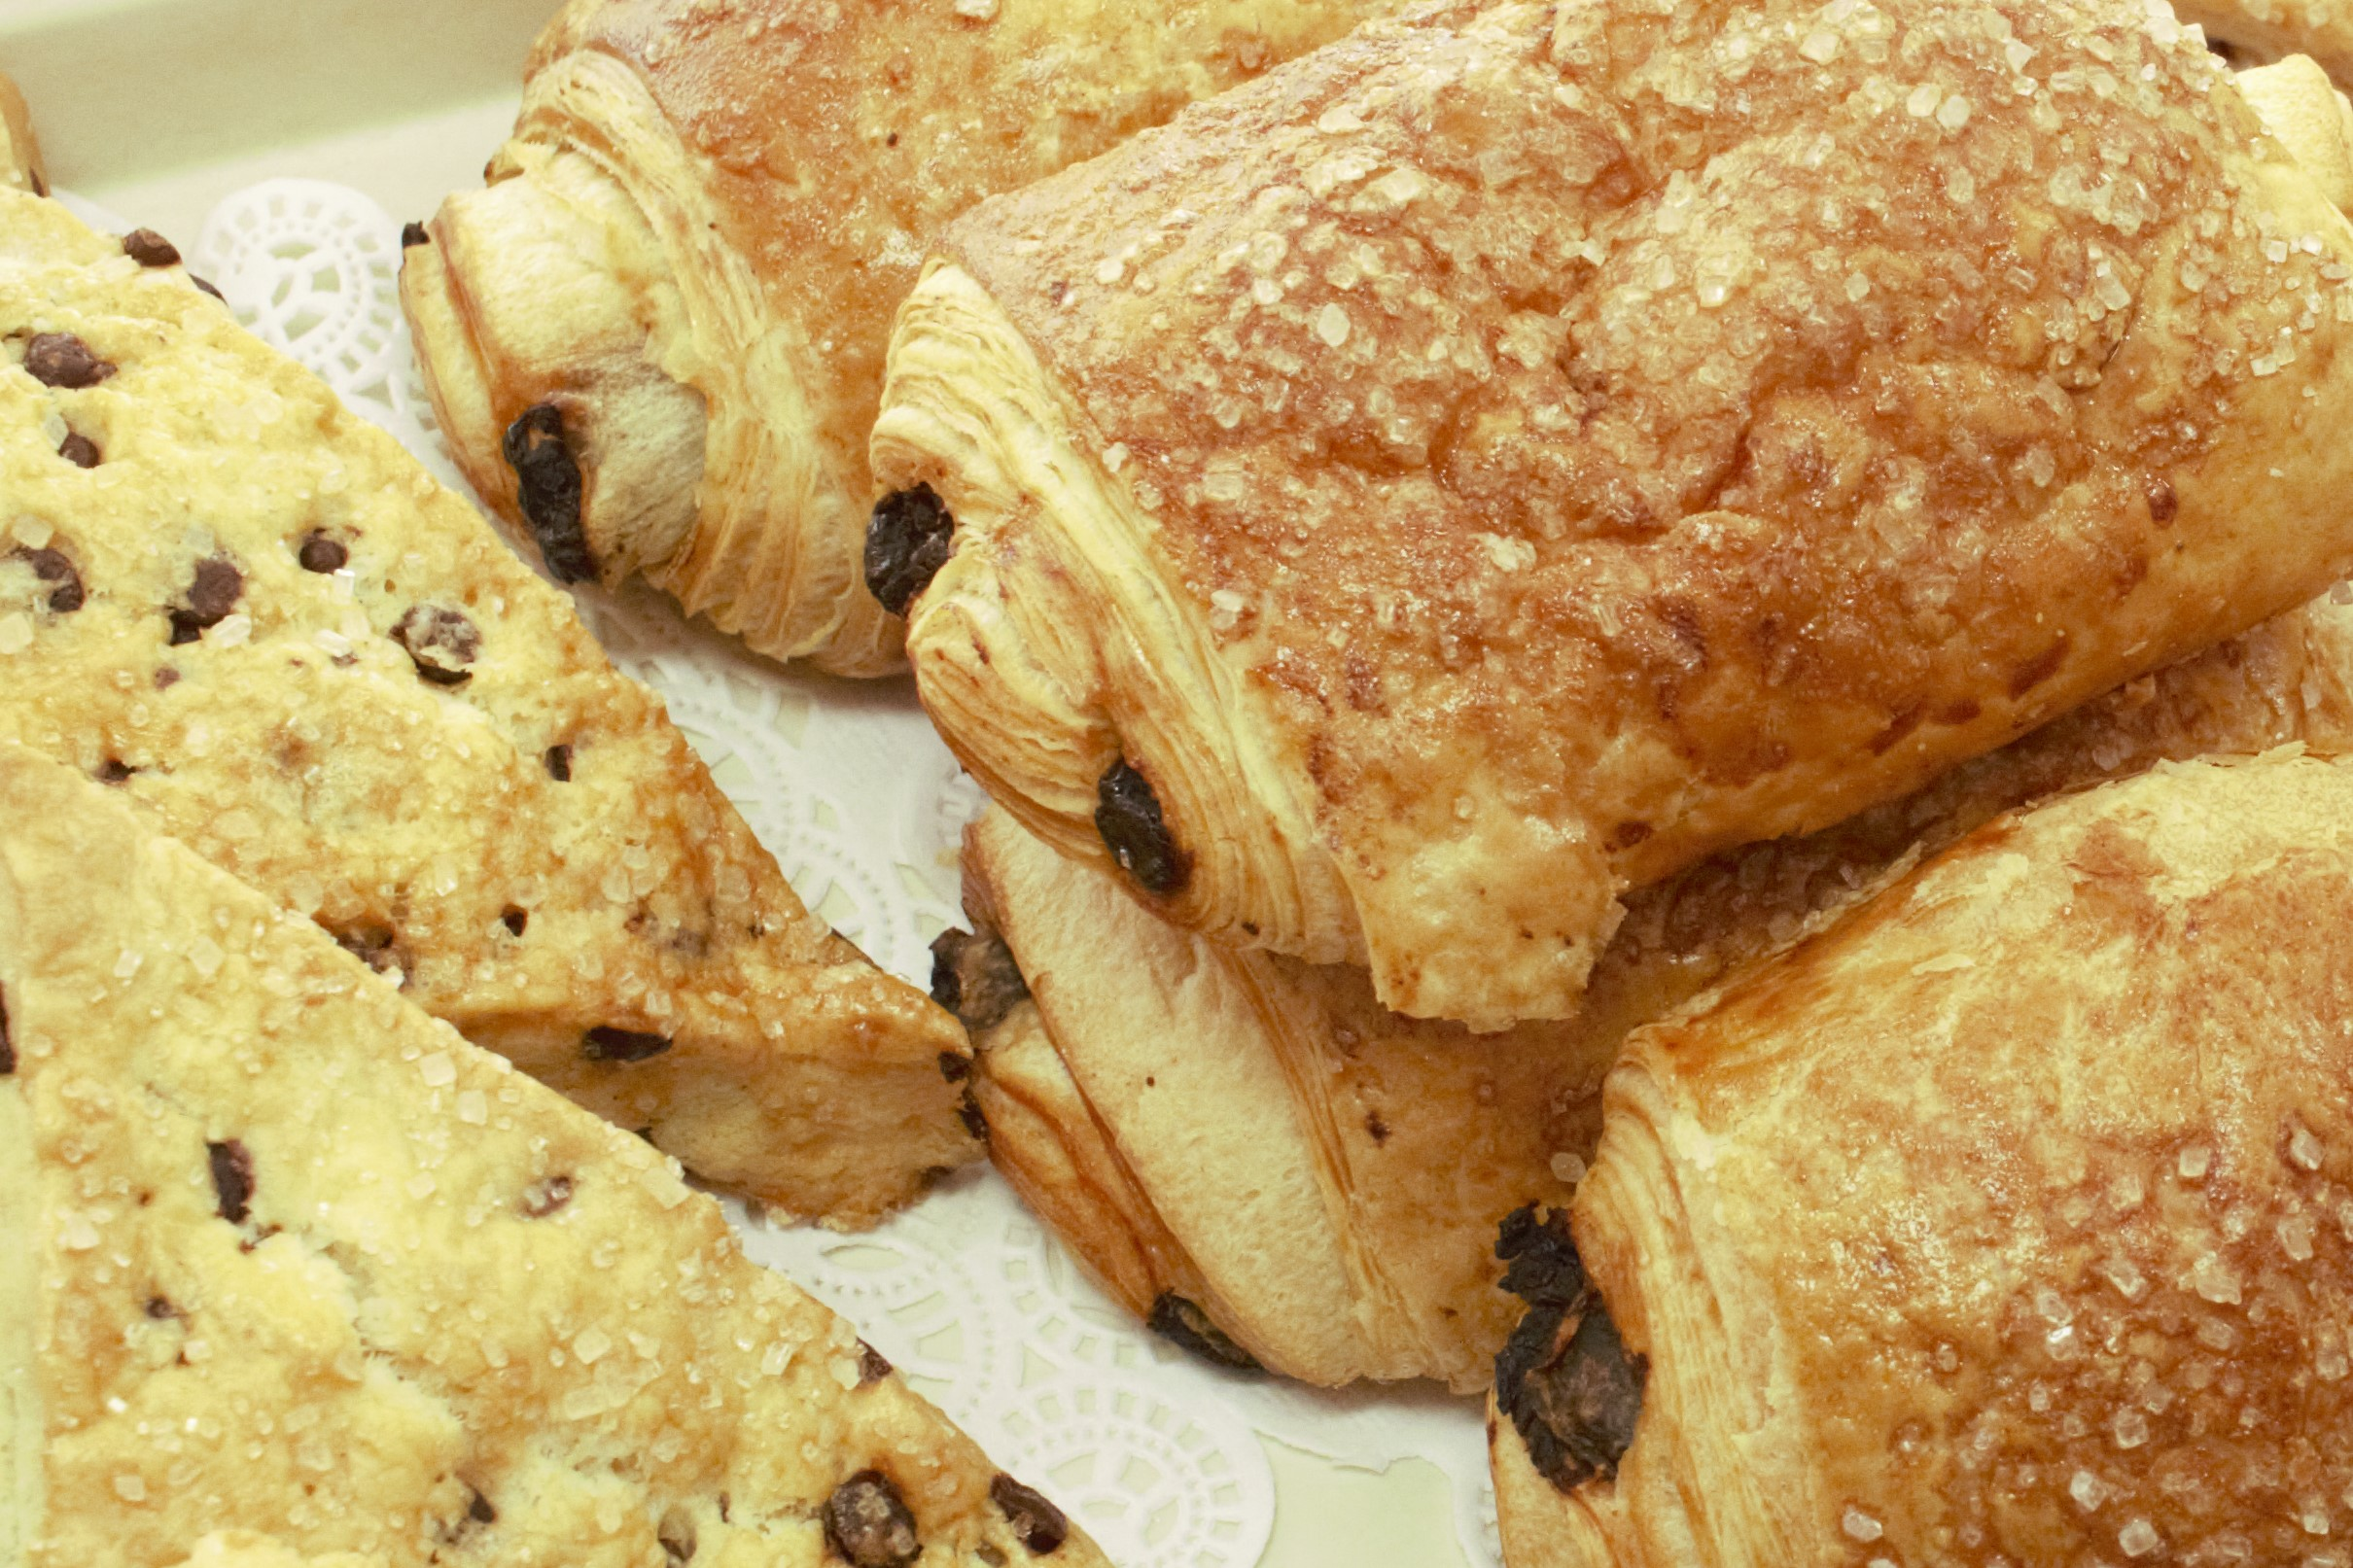 Scone and Croissant - Close Up.jpg